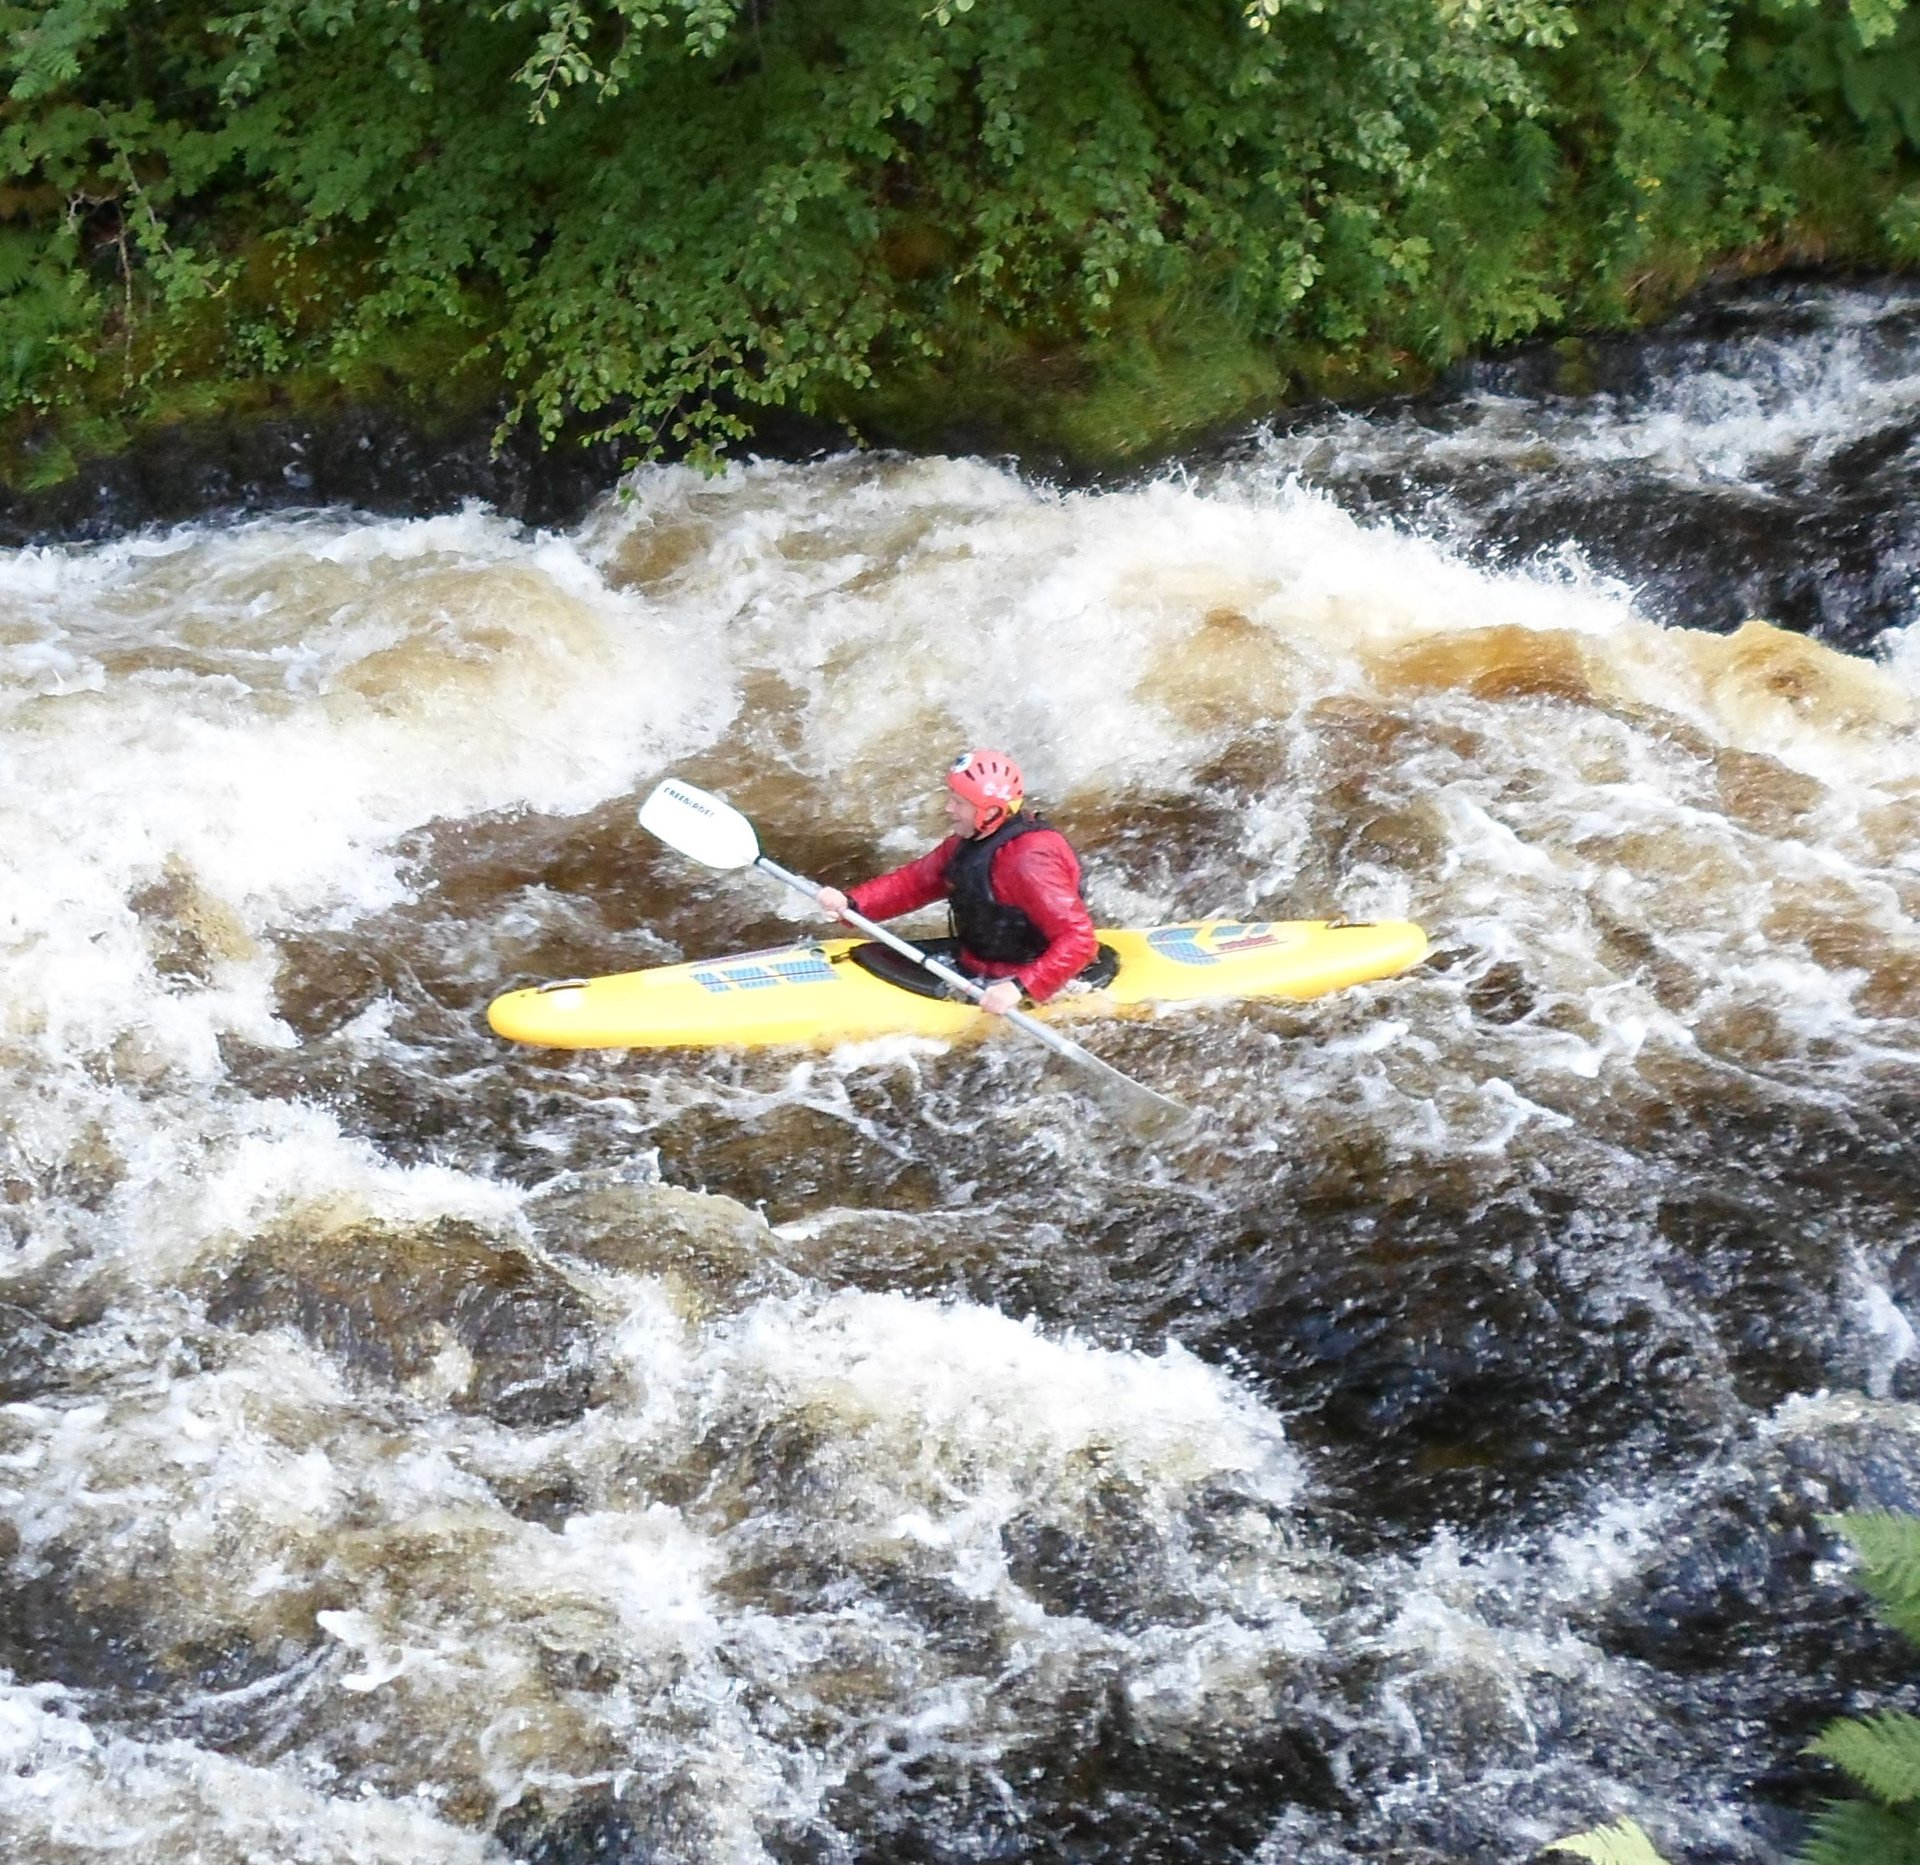 Whitewater kayaking on the river